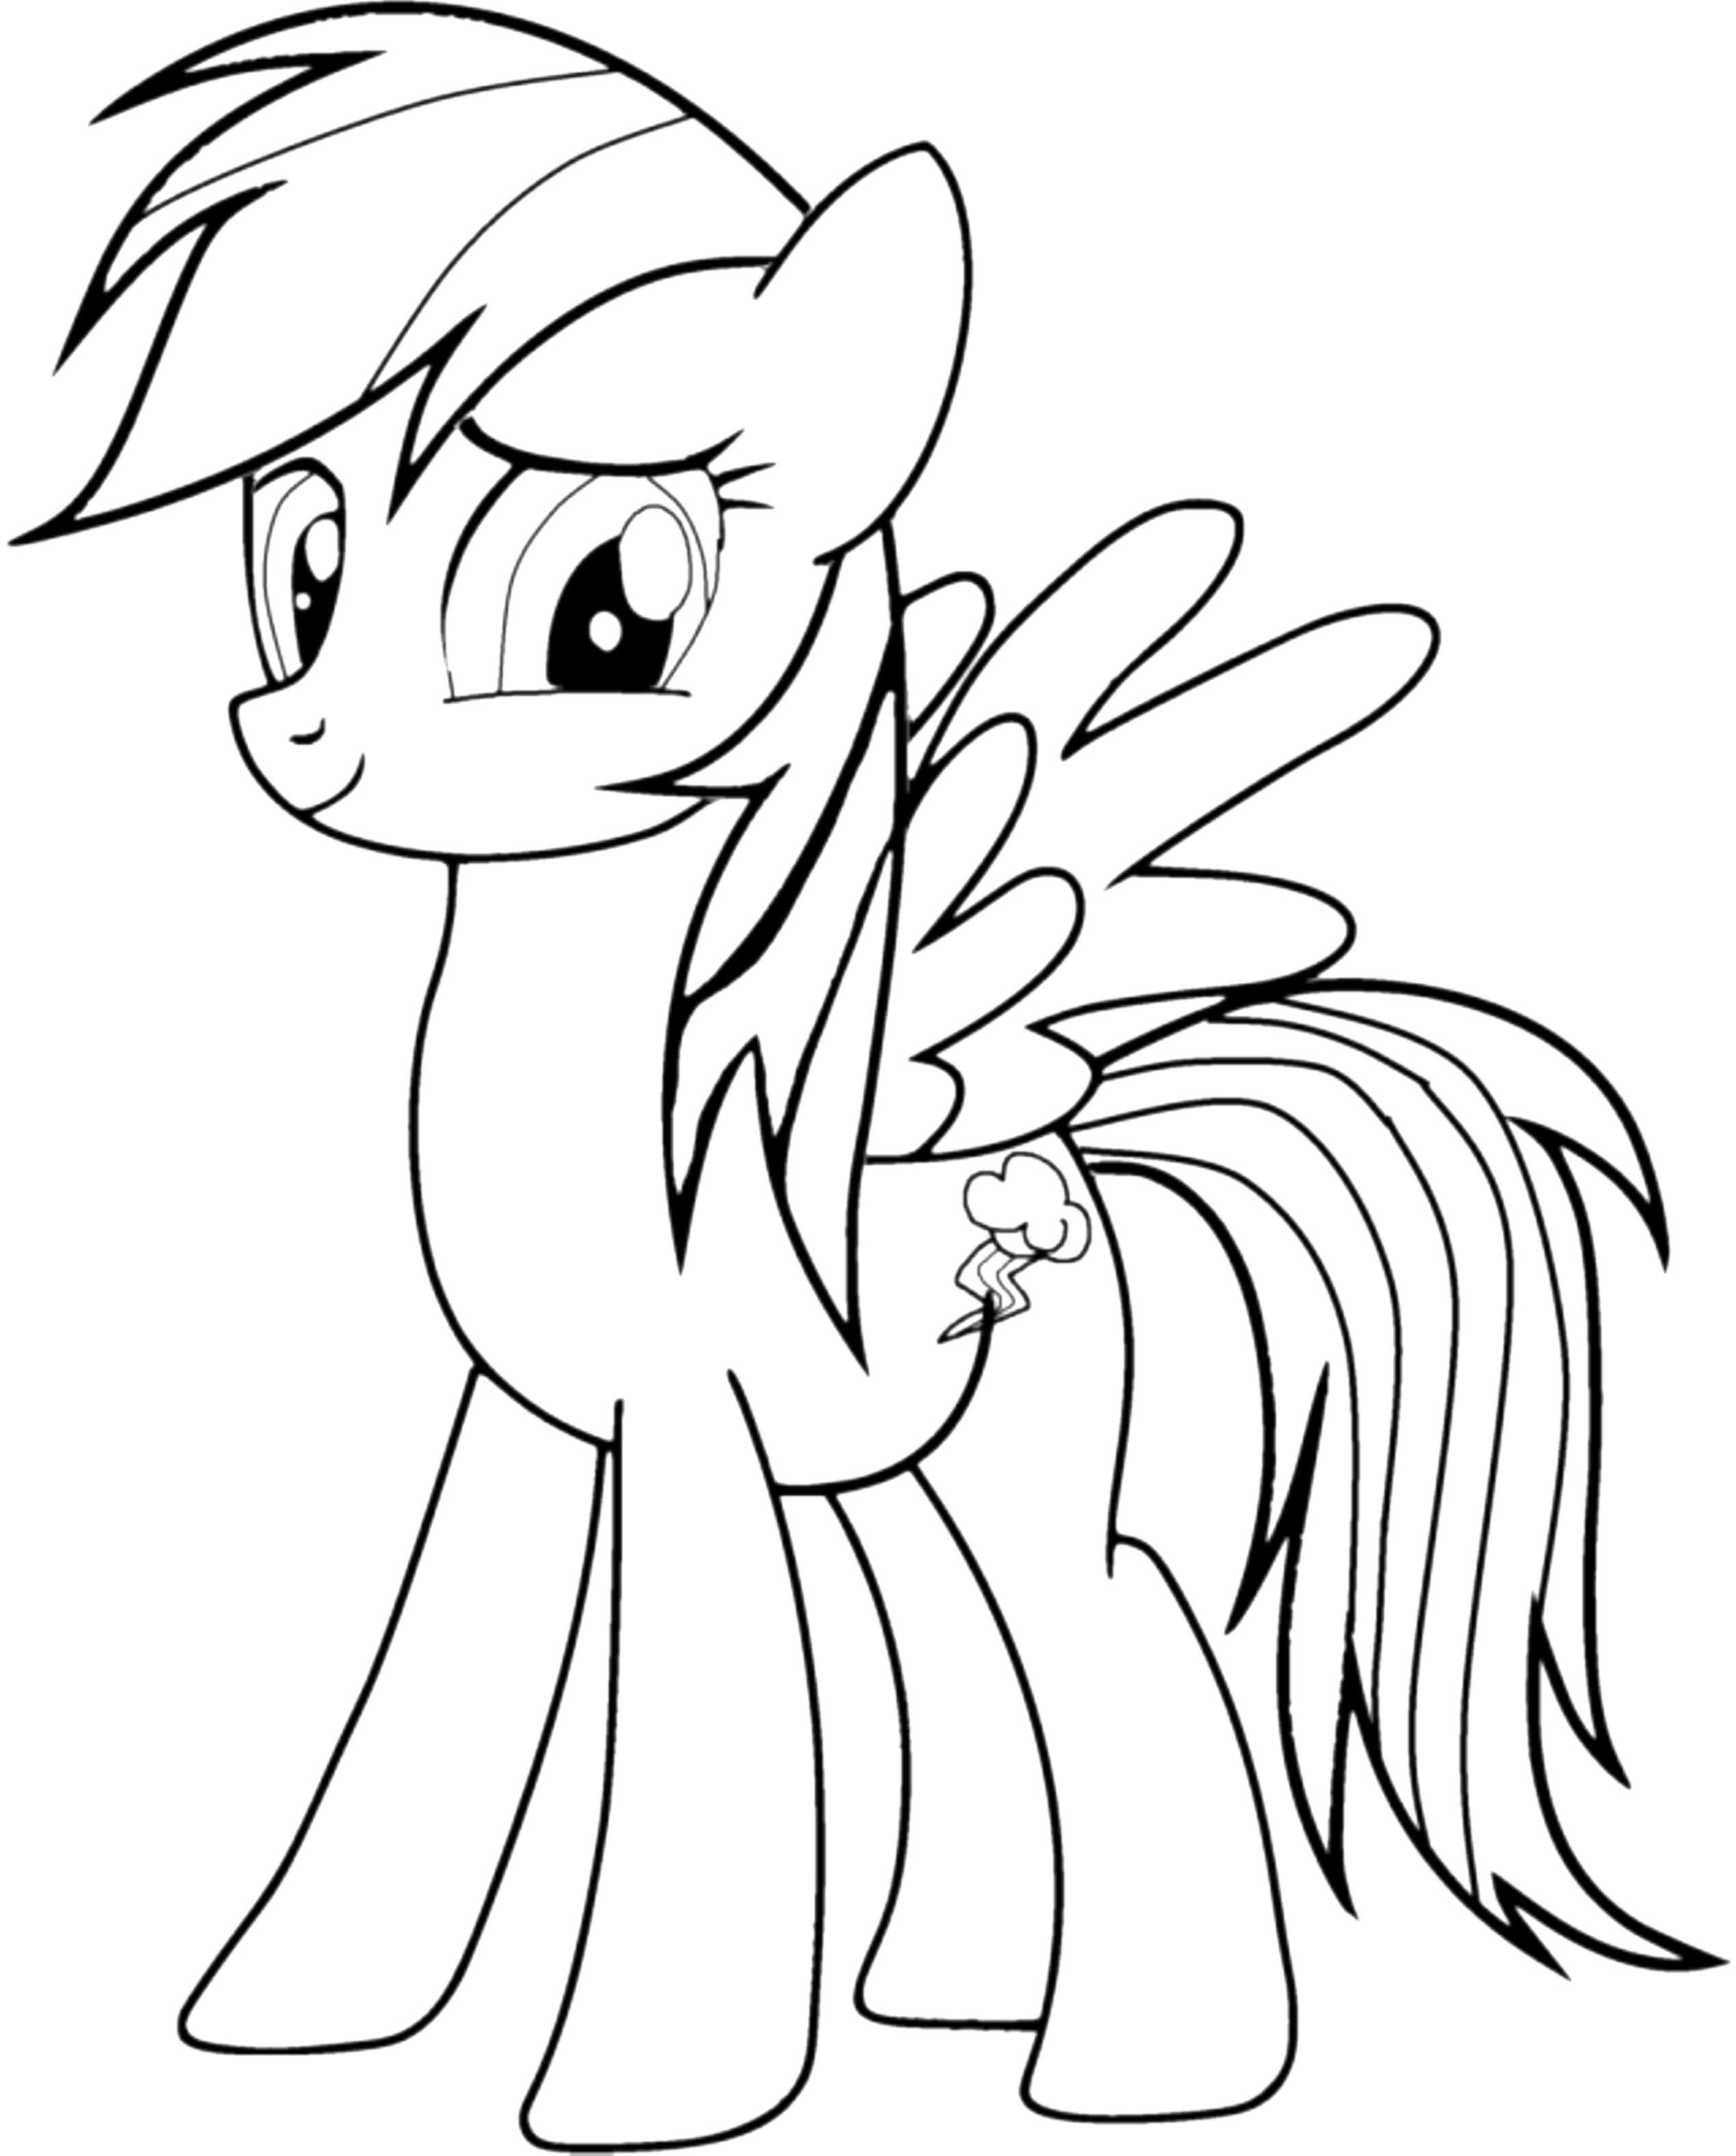 Rainbow Dash Coloring Pages Best Coloring Pages For Kids Colouring Pages Print